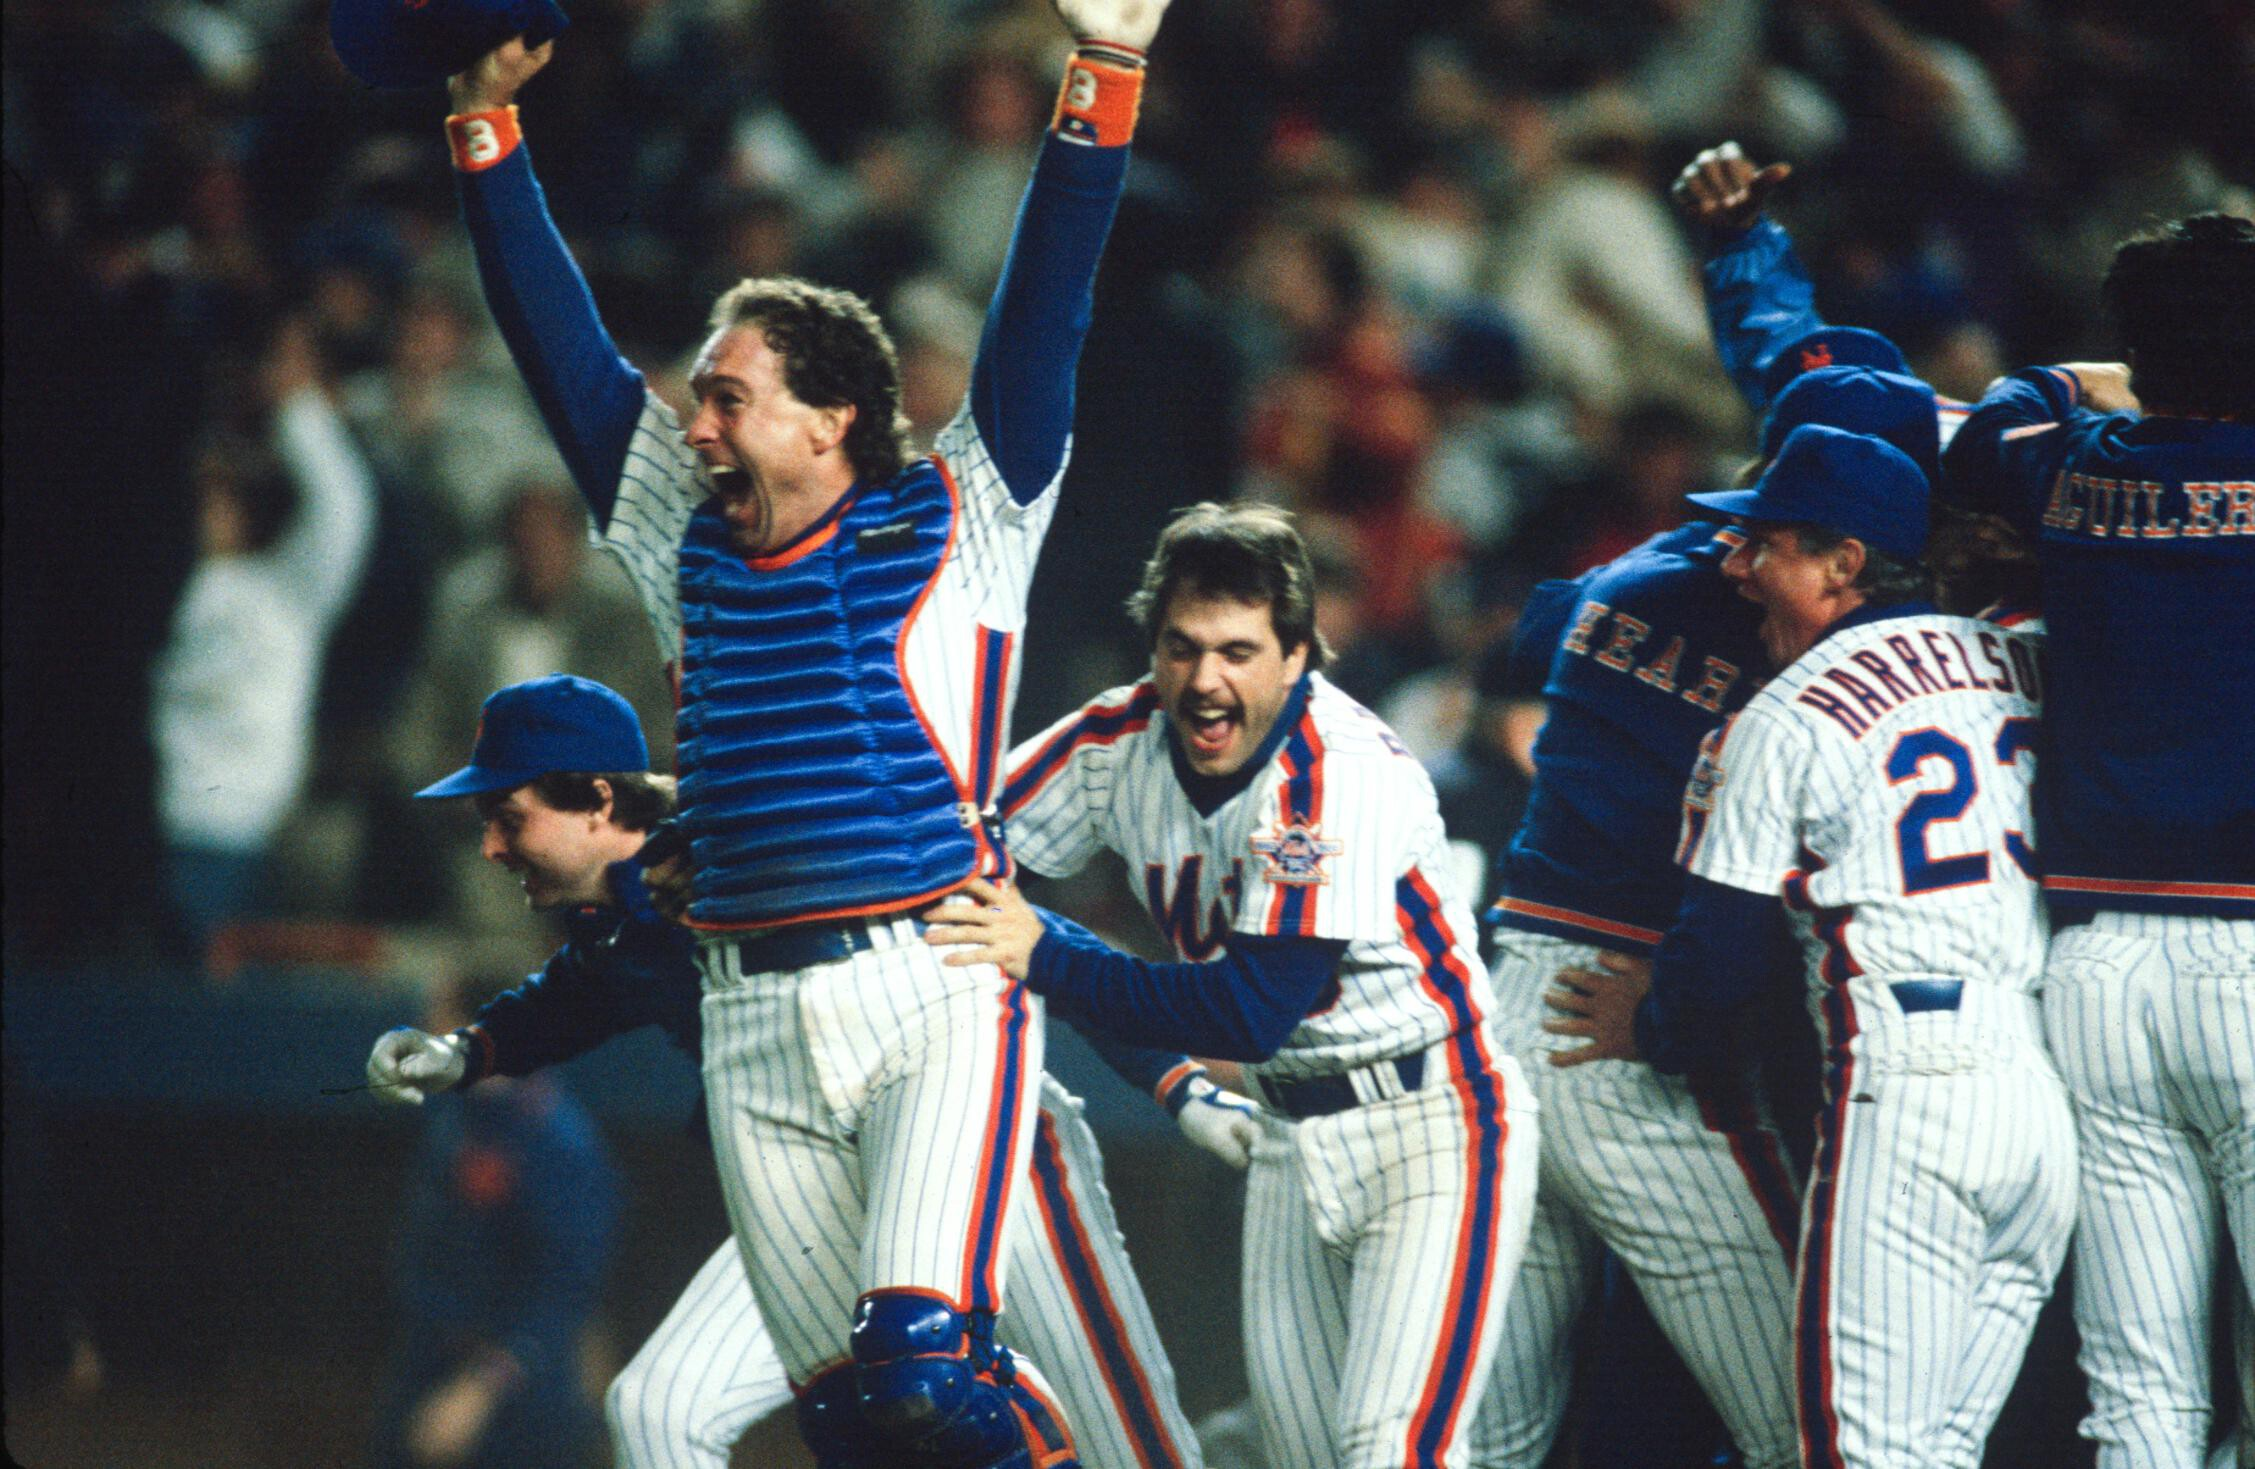 <i>MLB Photos/Getty Images/Courtesy of ESPN</i><br/>Gary Carter and Wally Backman celebrate after winning the 1986 World Series between the New York Mets and the Boston Red Sox.